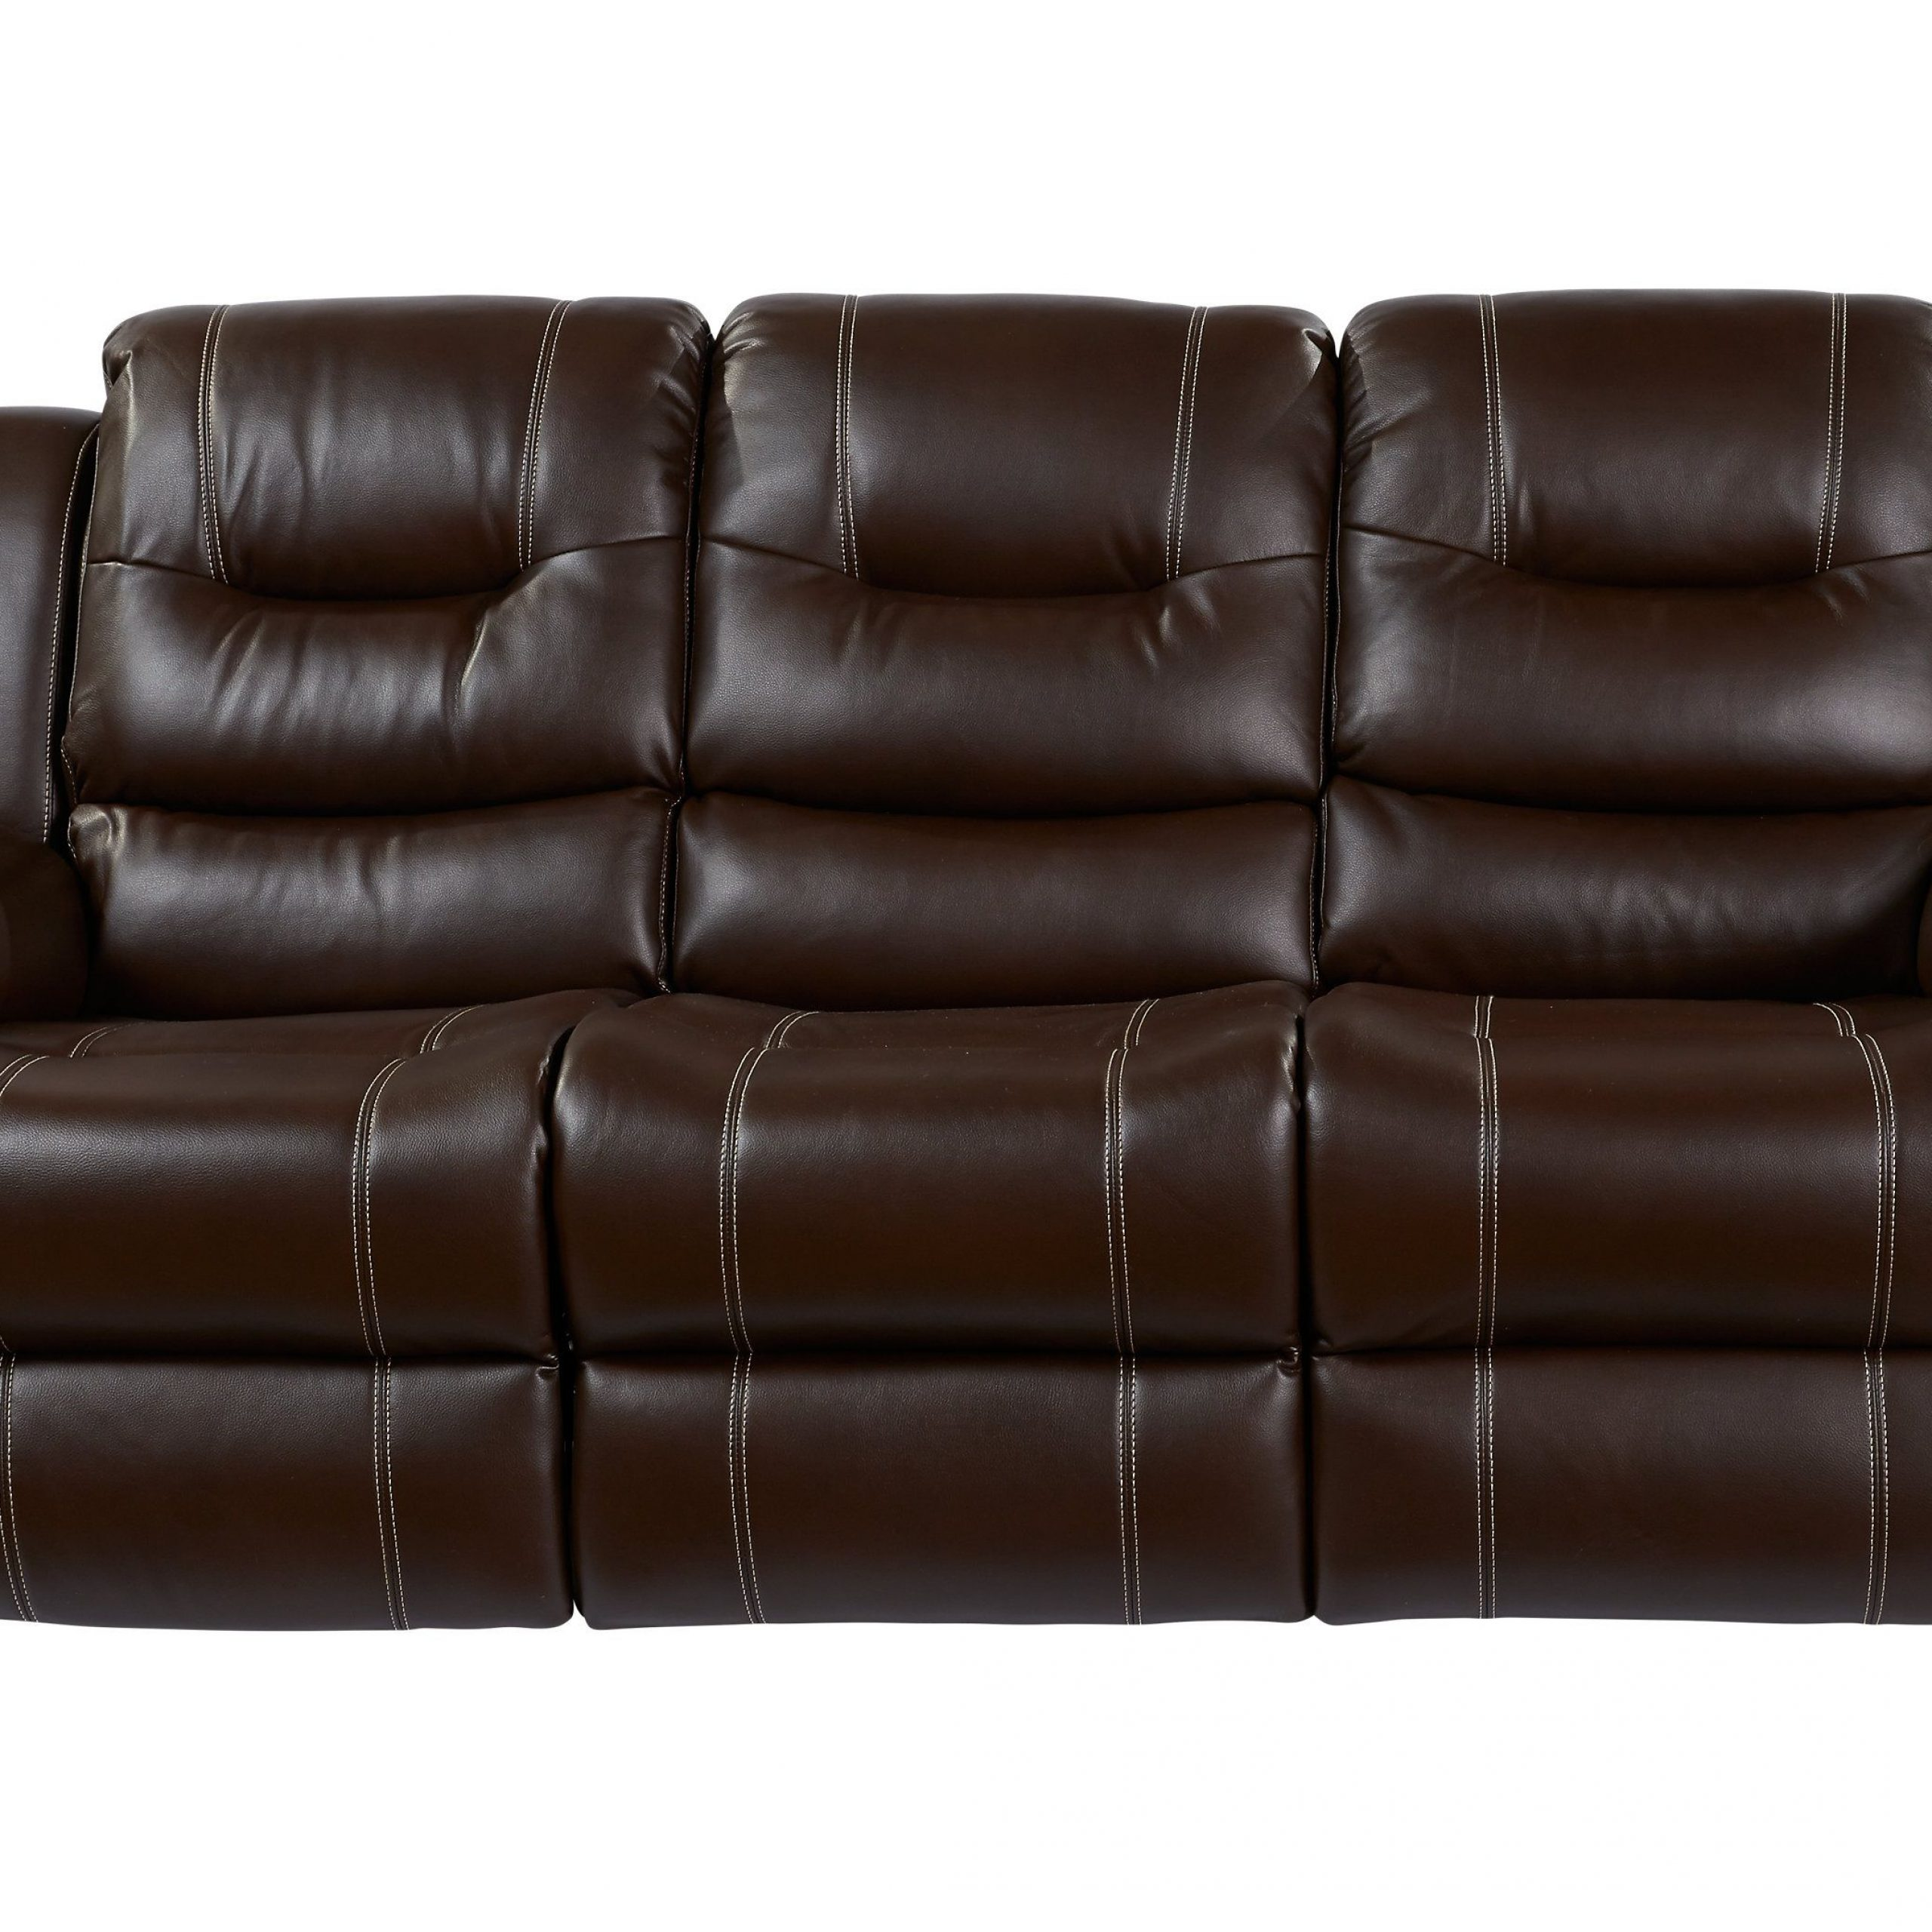 Brown Leather Sofa Living Room, Reclining Sofa, Affordable Inside Well Known Marco Leather Power Reclining Sofas (View 7 of 20)